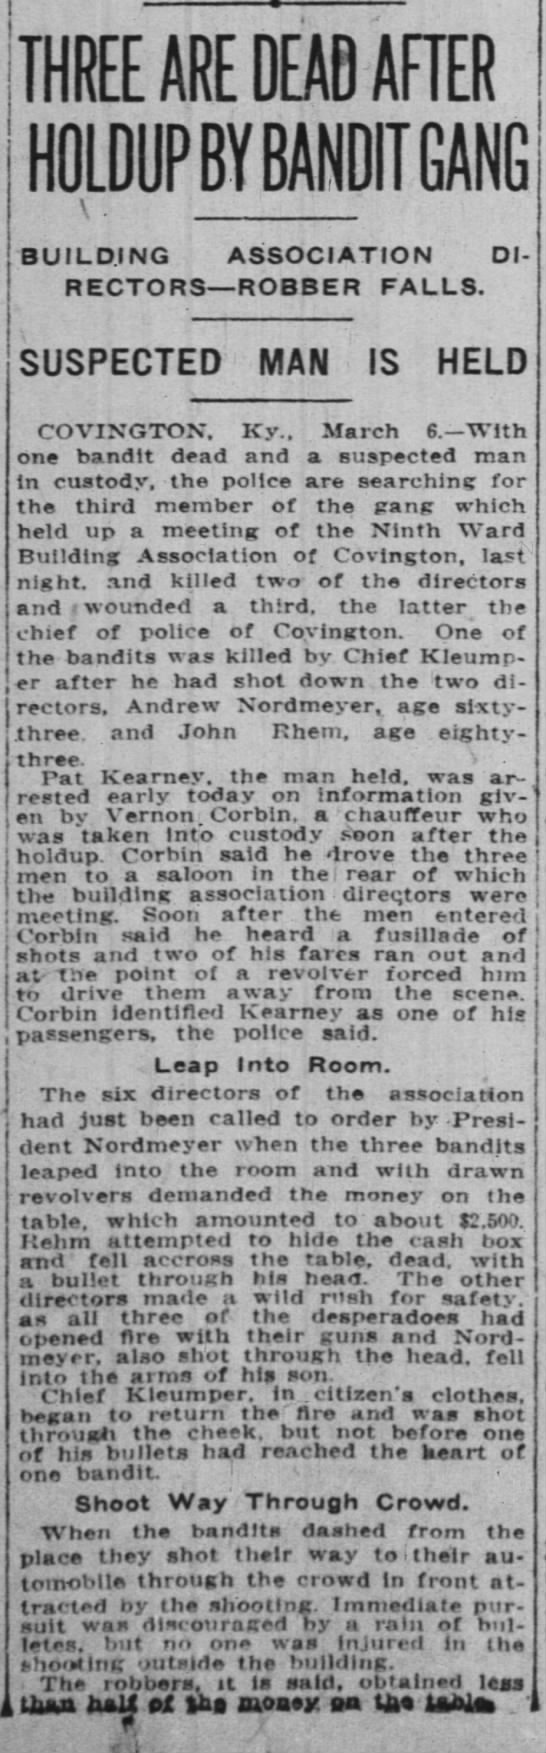 Andrew Nordmeyer killed by Bandit Gang in Covington, KY